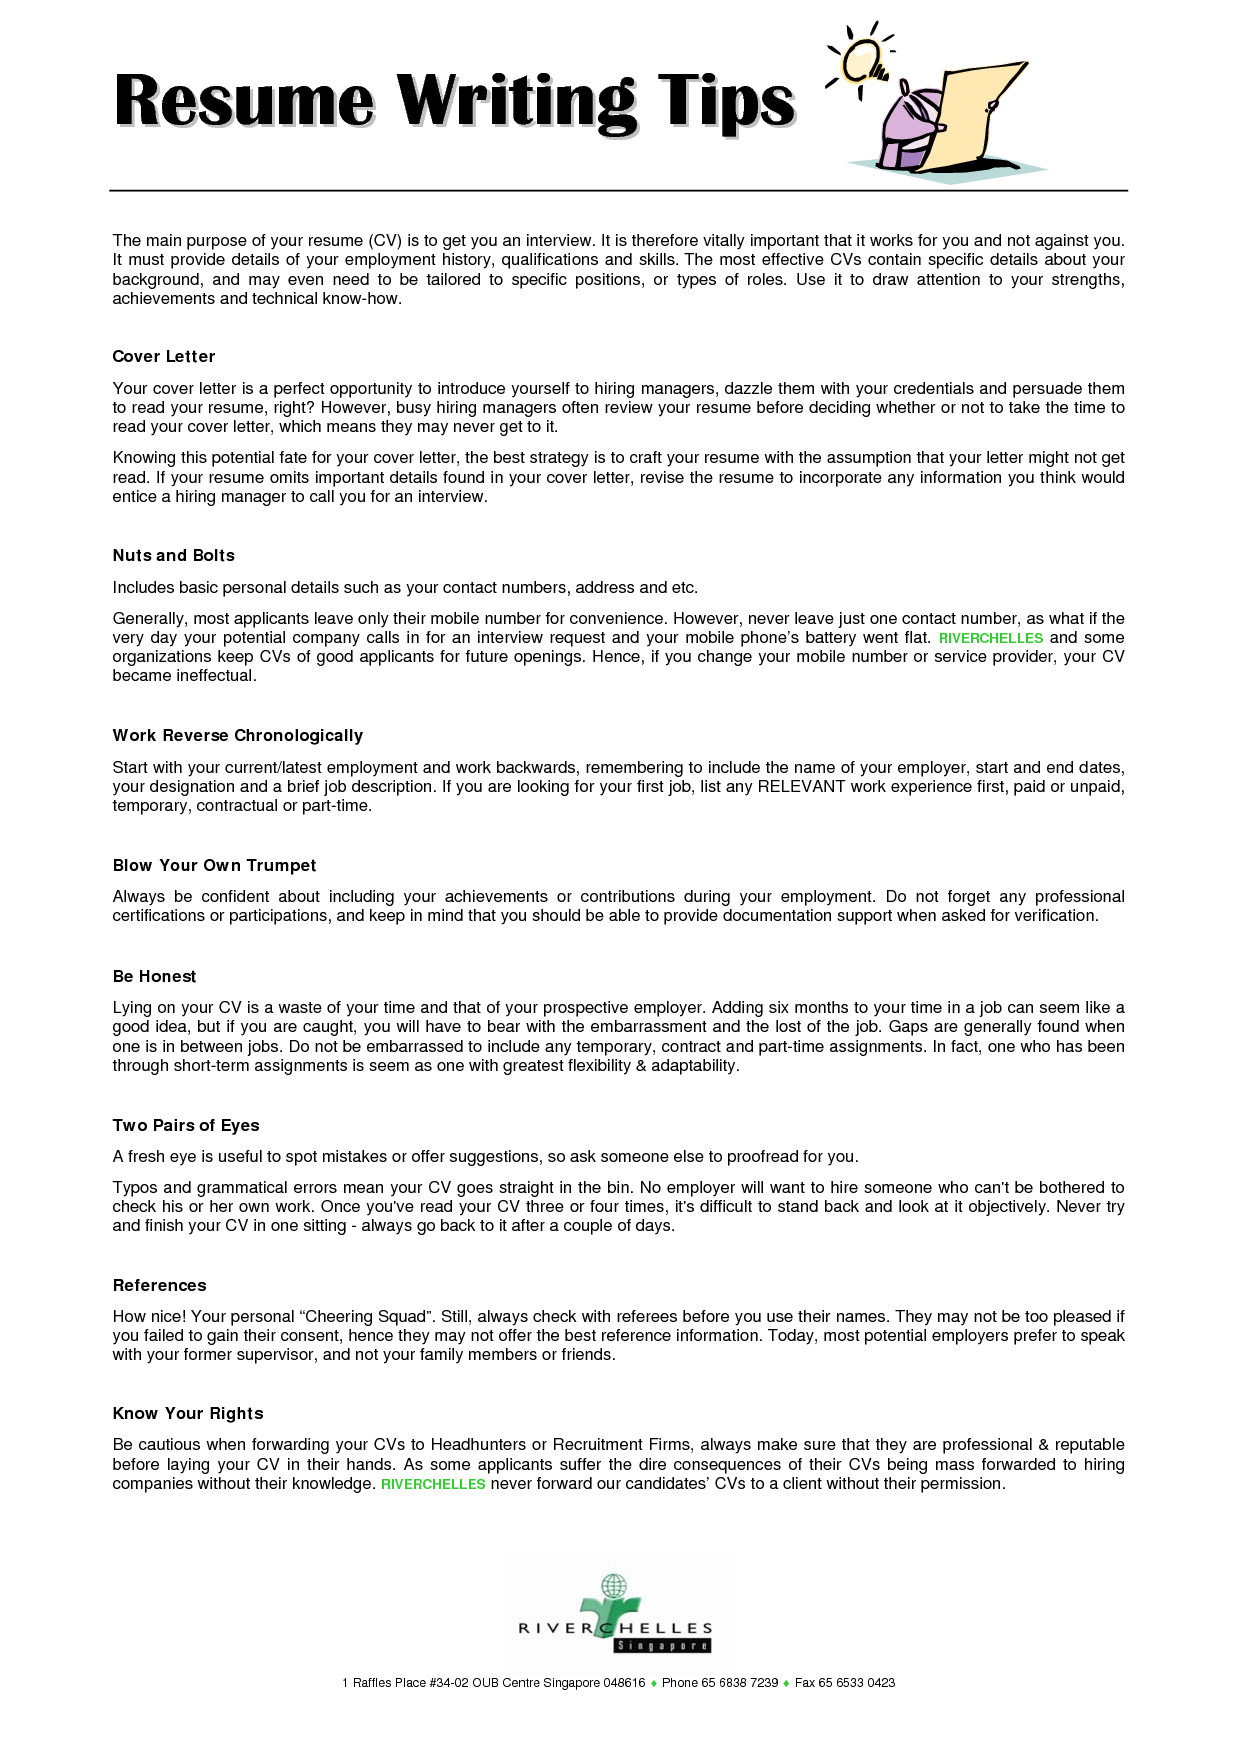 Perfect Resume Writing Tips For Tips For Making A Resume